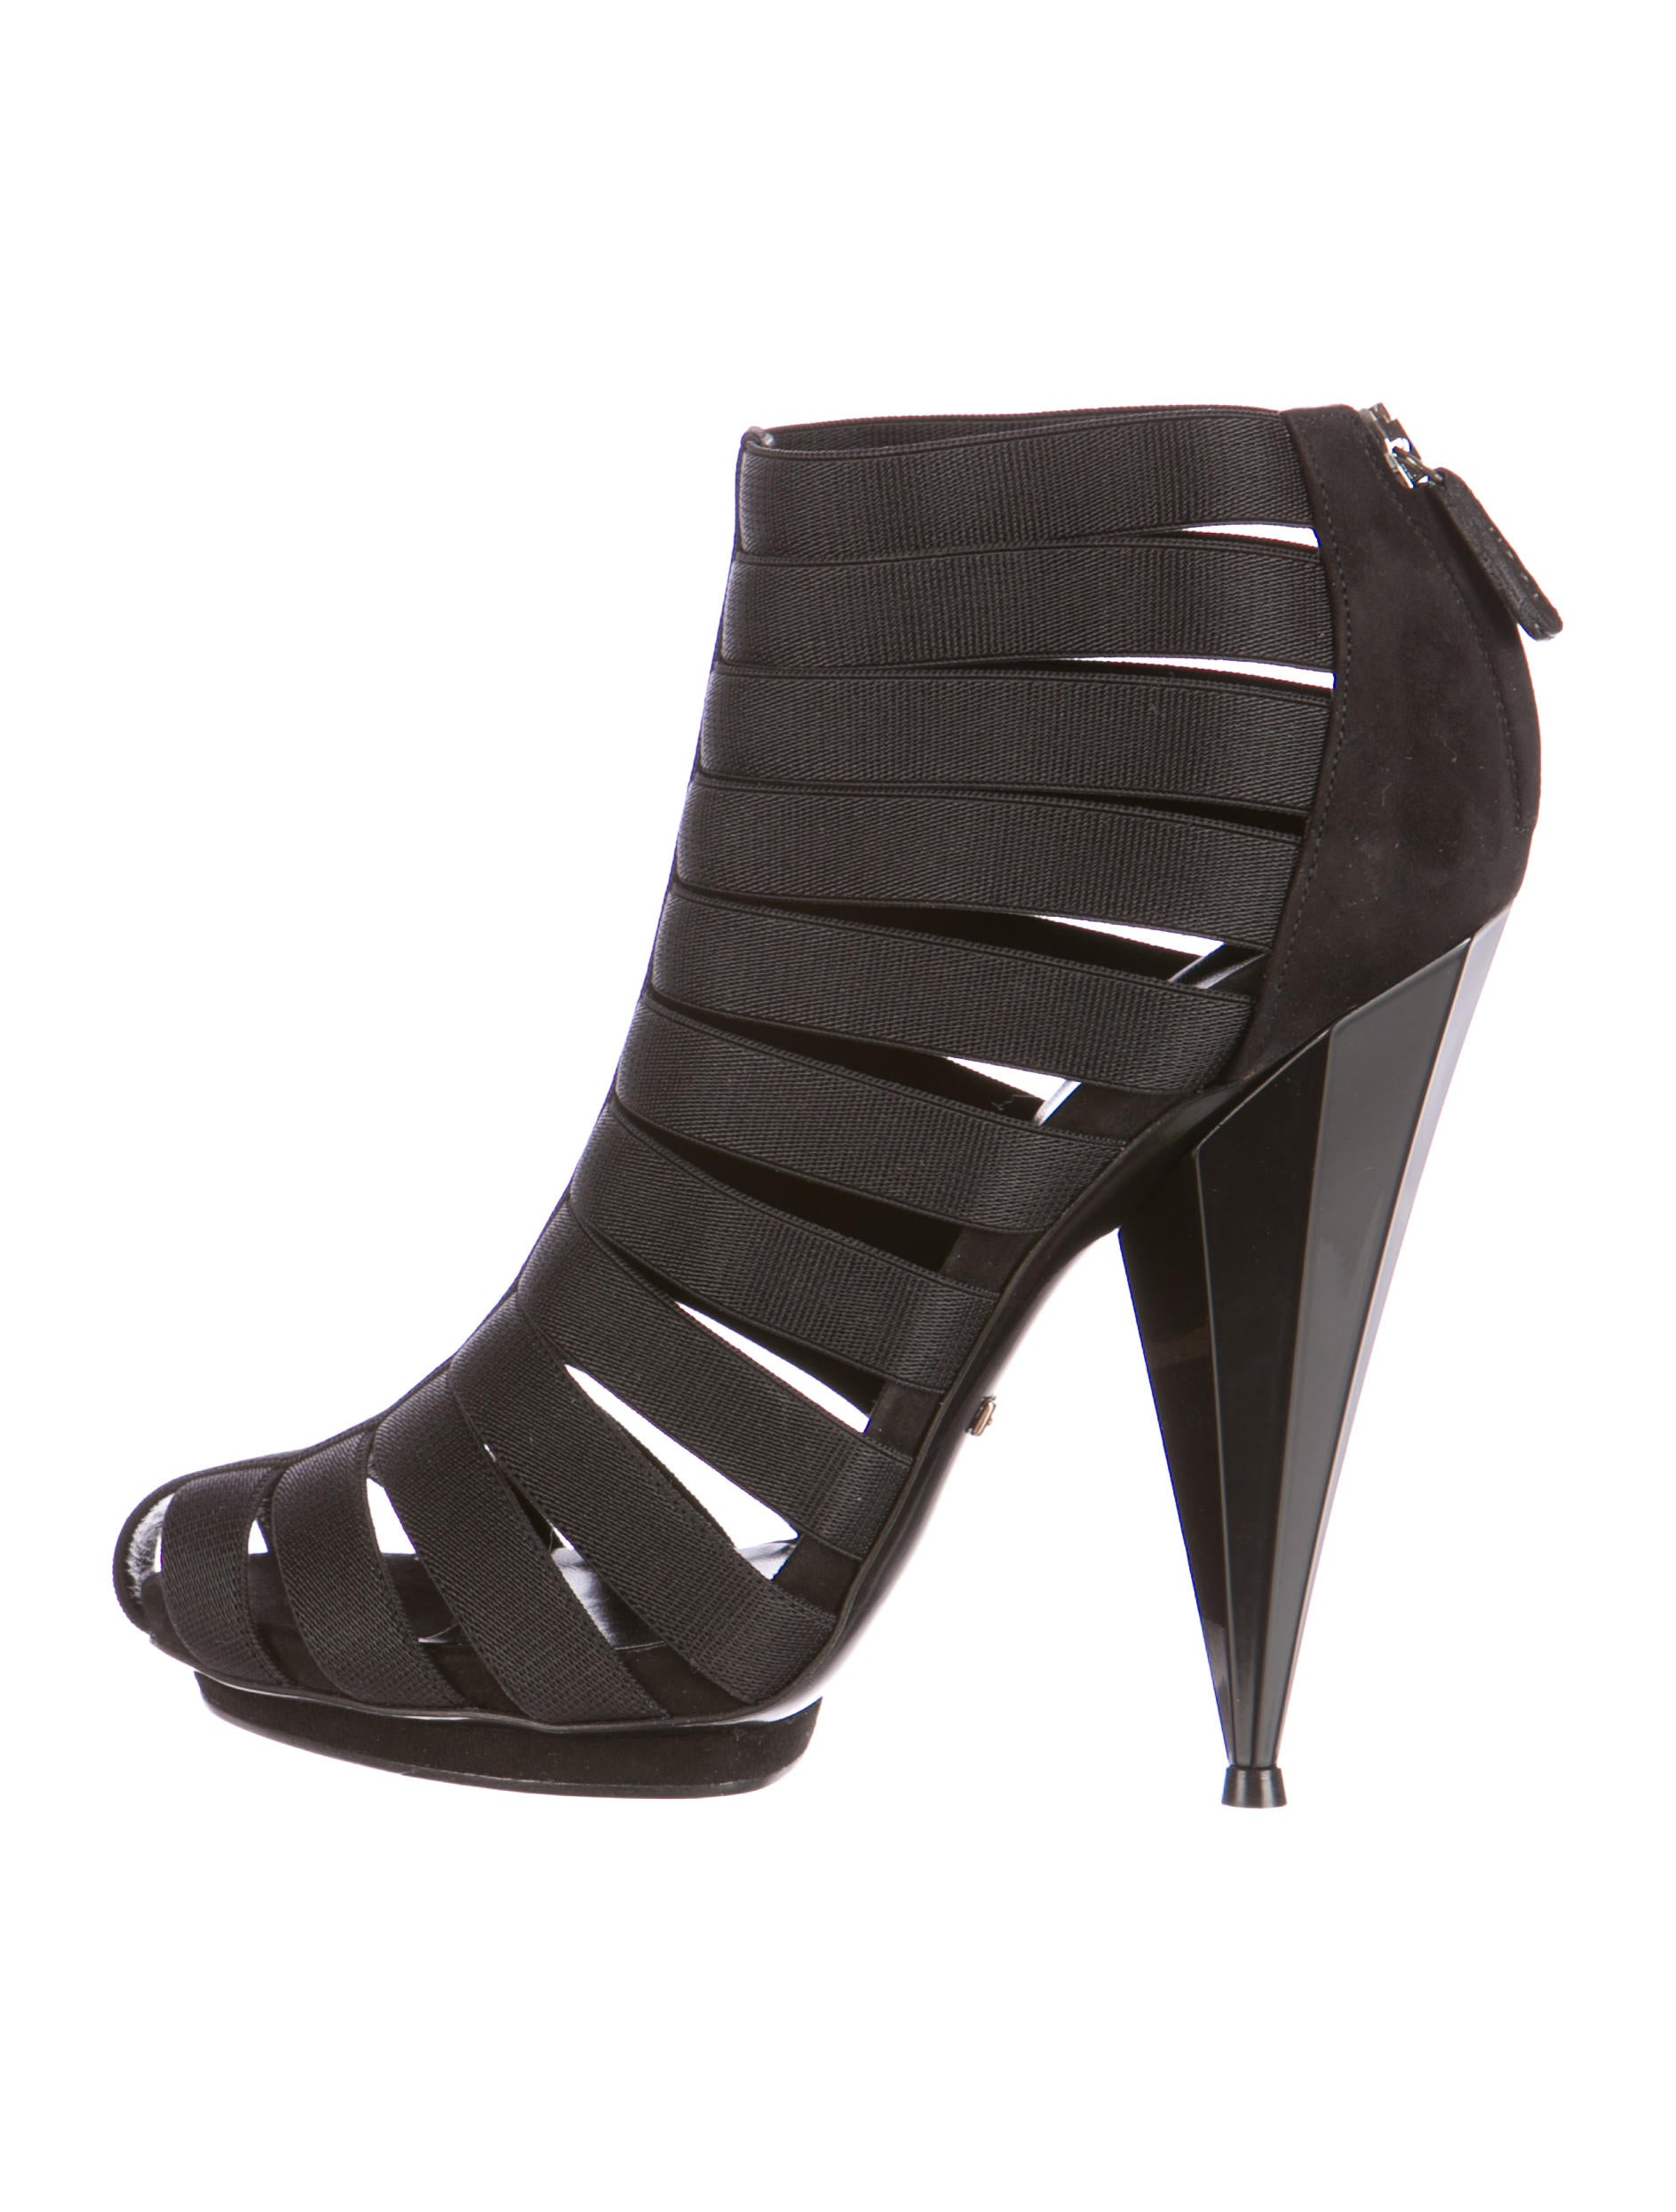 0e3225b57 Gucci Isadora Elastic Gladiator Booties w/ Tags - Shoes - GUC77495 ...